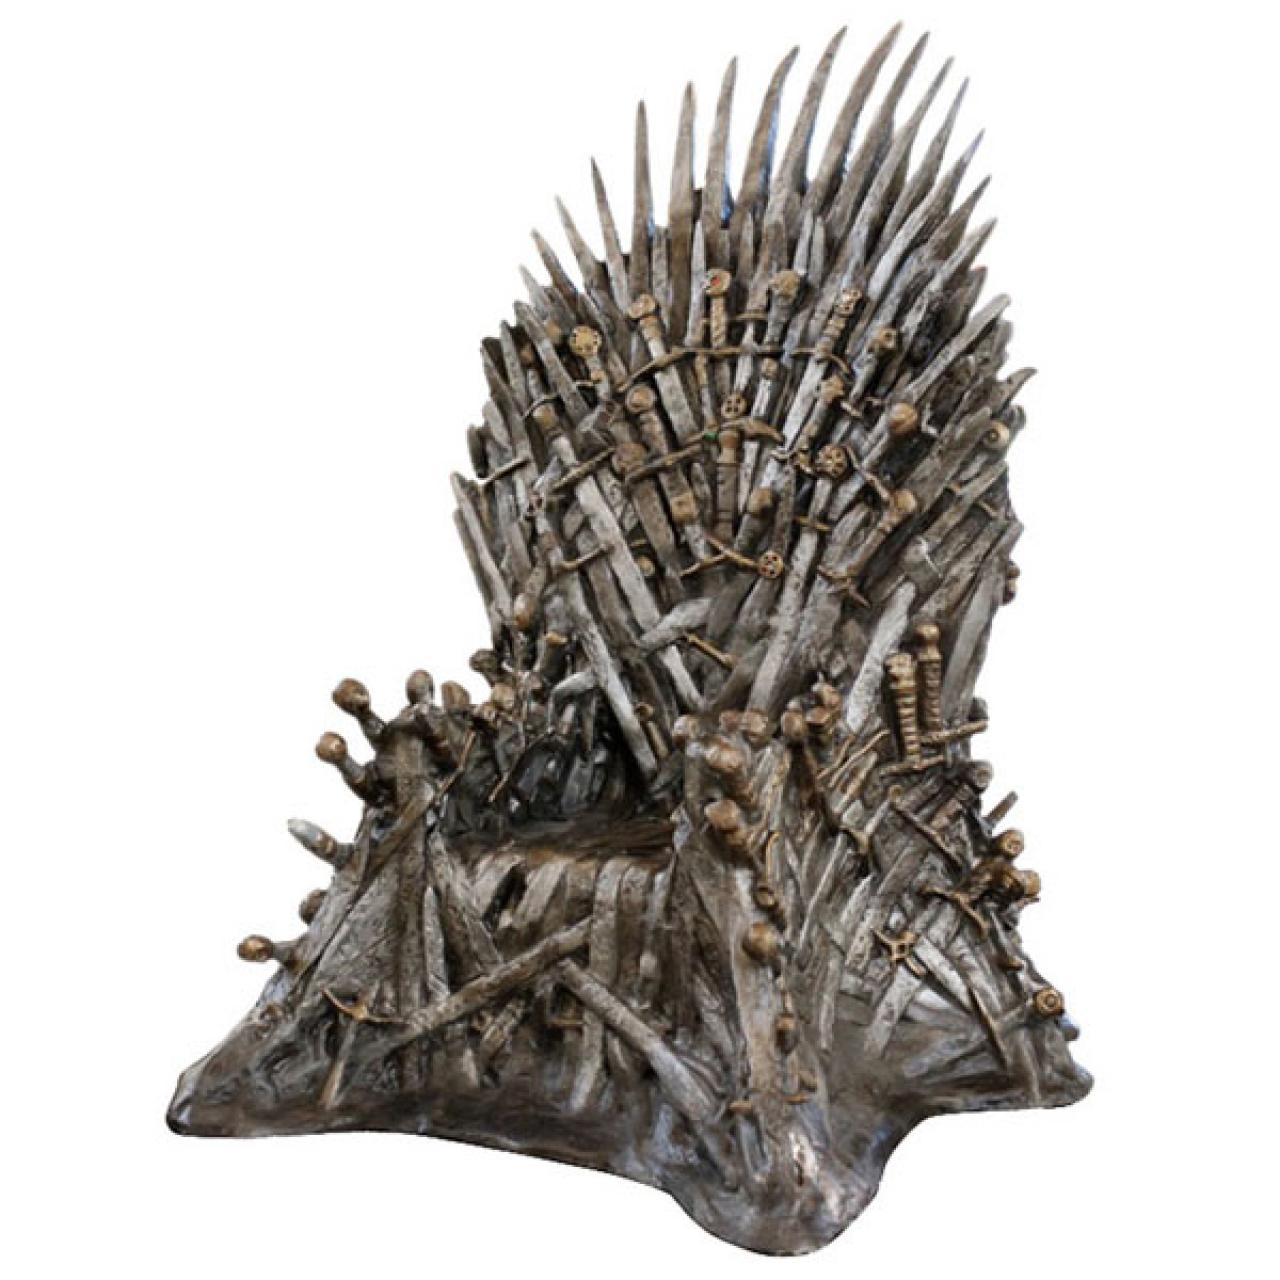 A Life Sized Iron Throne 27 More Awesome Game Of Thrones